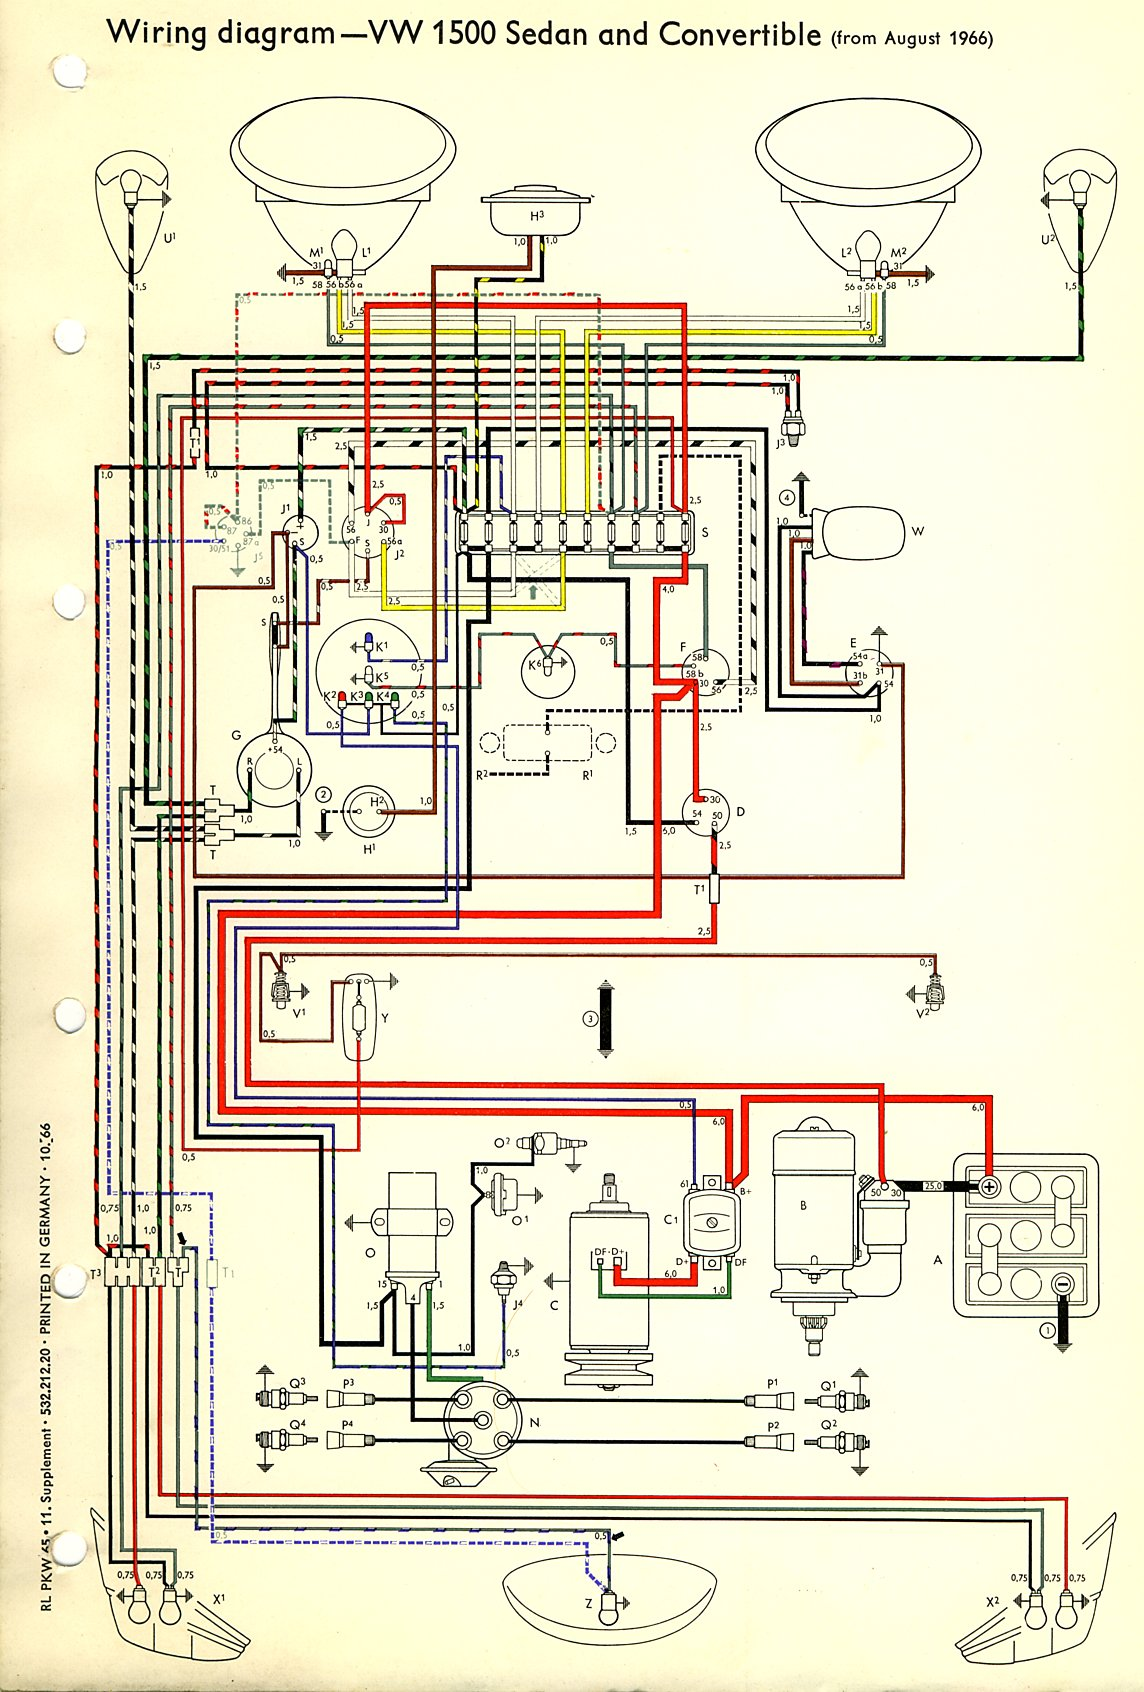 1965 Vw Wiring Diagram Opinions About Wiring Diagram \u2022 76 VW Bus Wiring  Diagram 1965 Vw Wiring Diagram